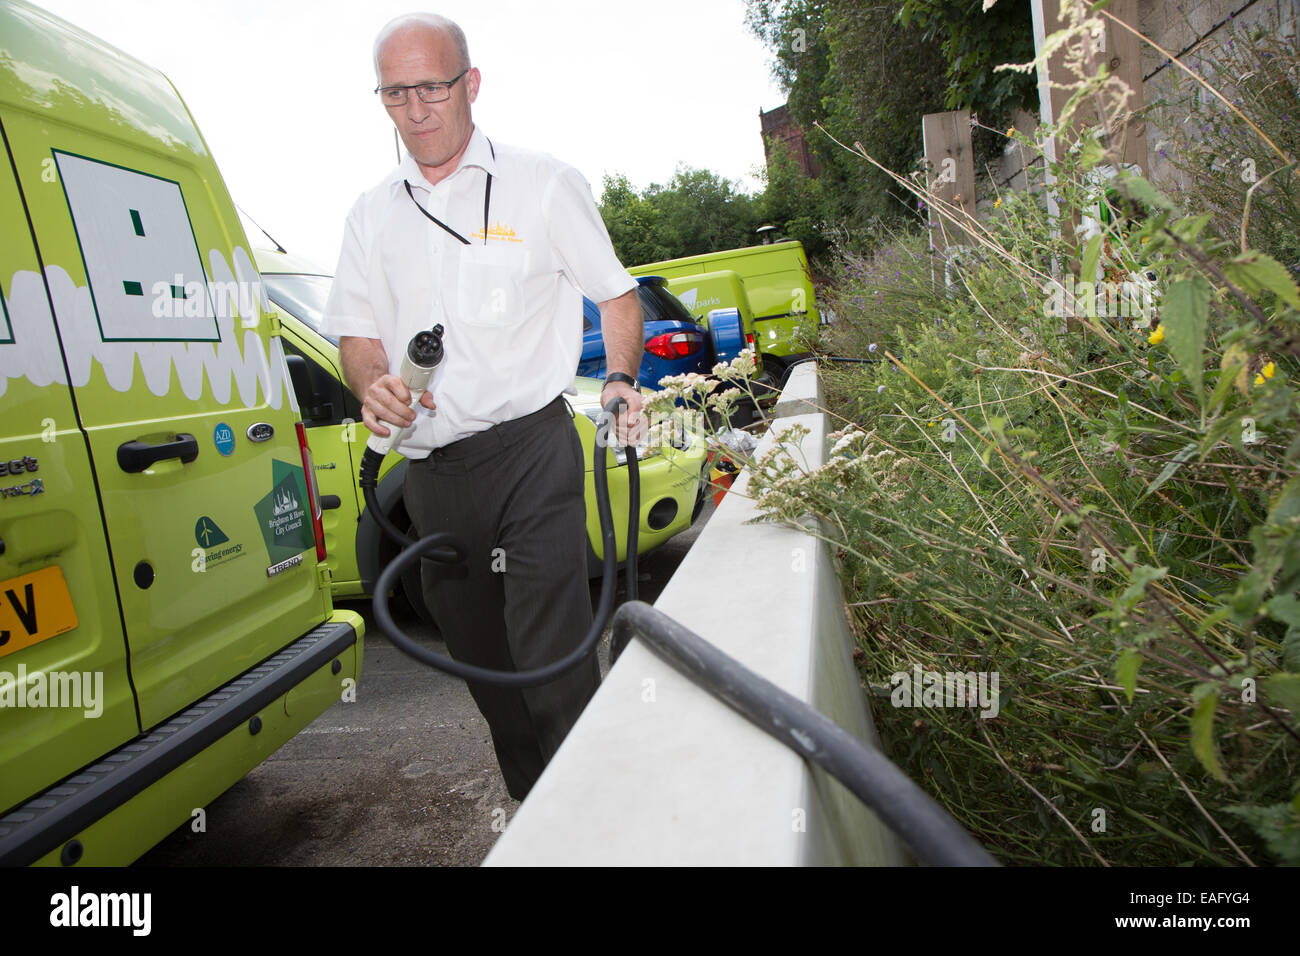 Man charges an electric van at a Brighton Council depot. - Stock Image